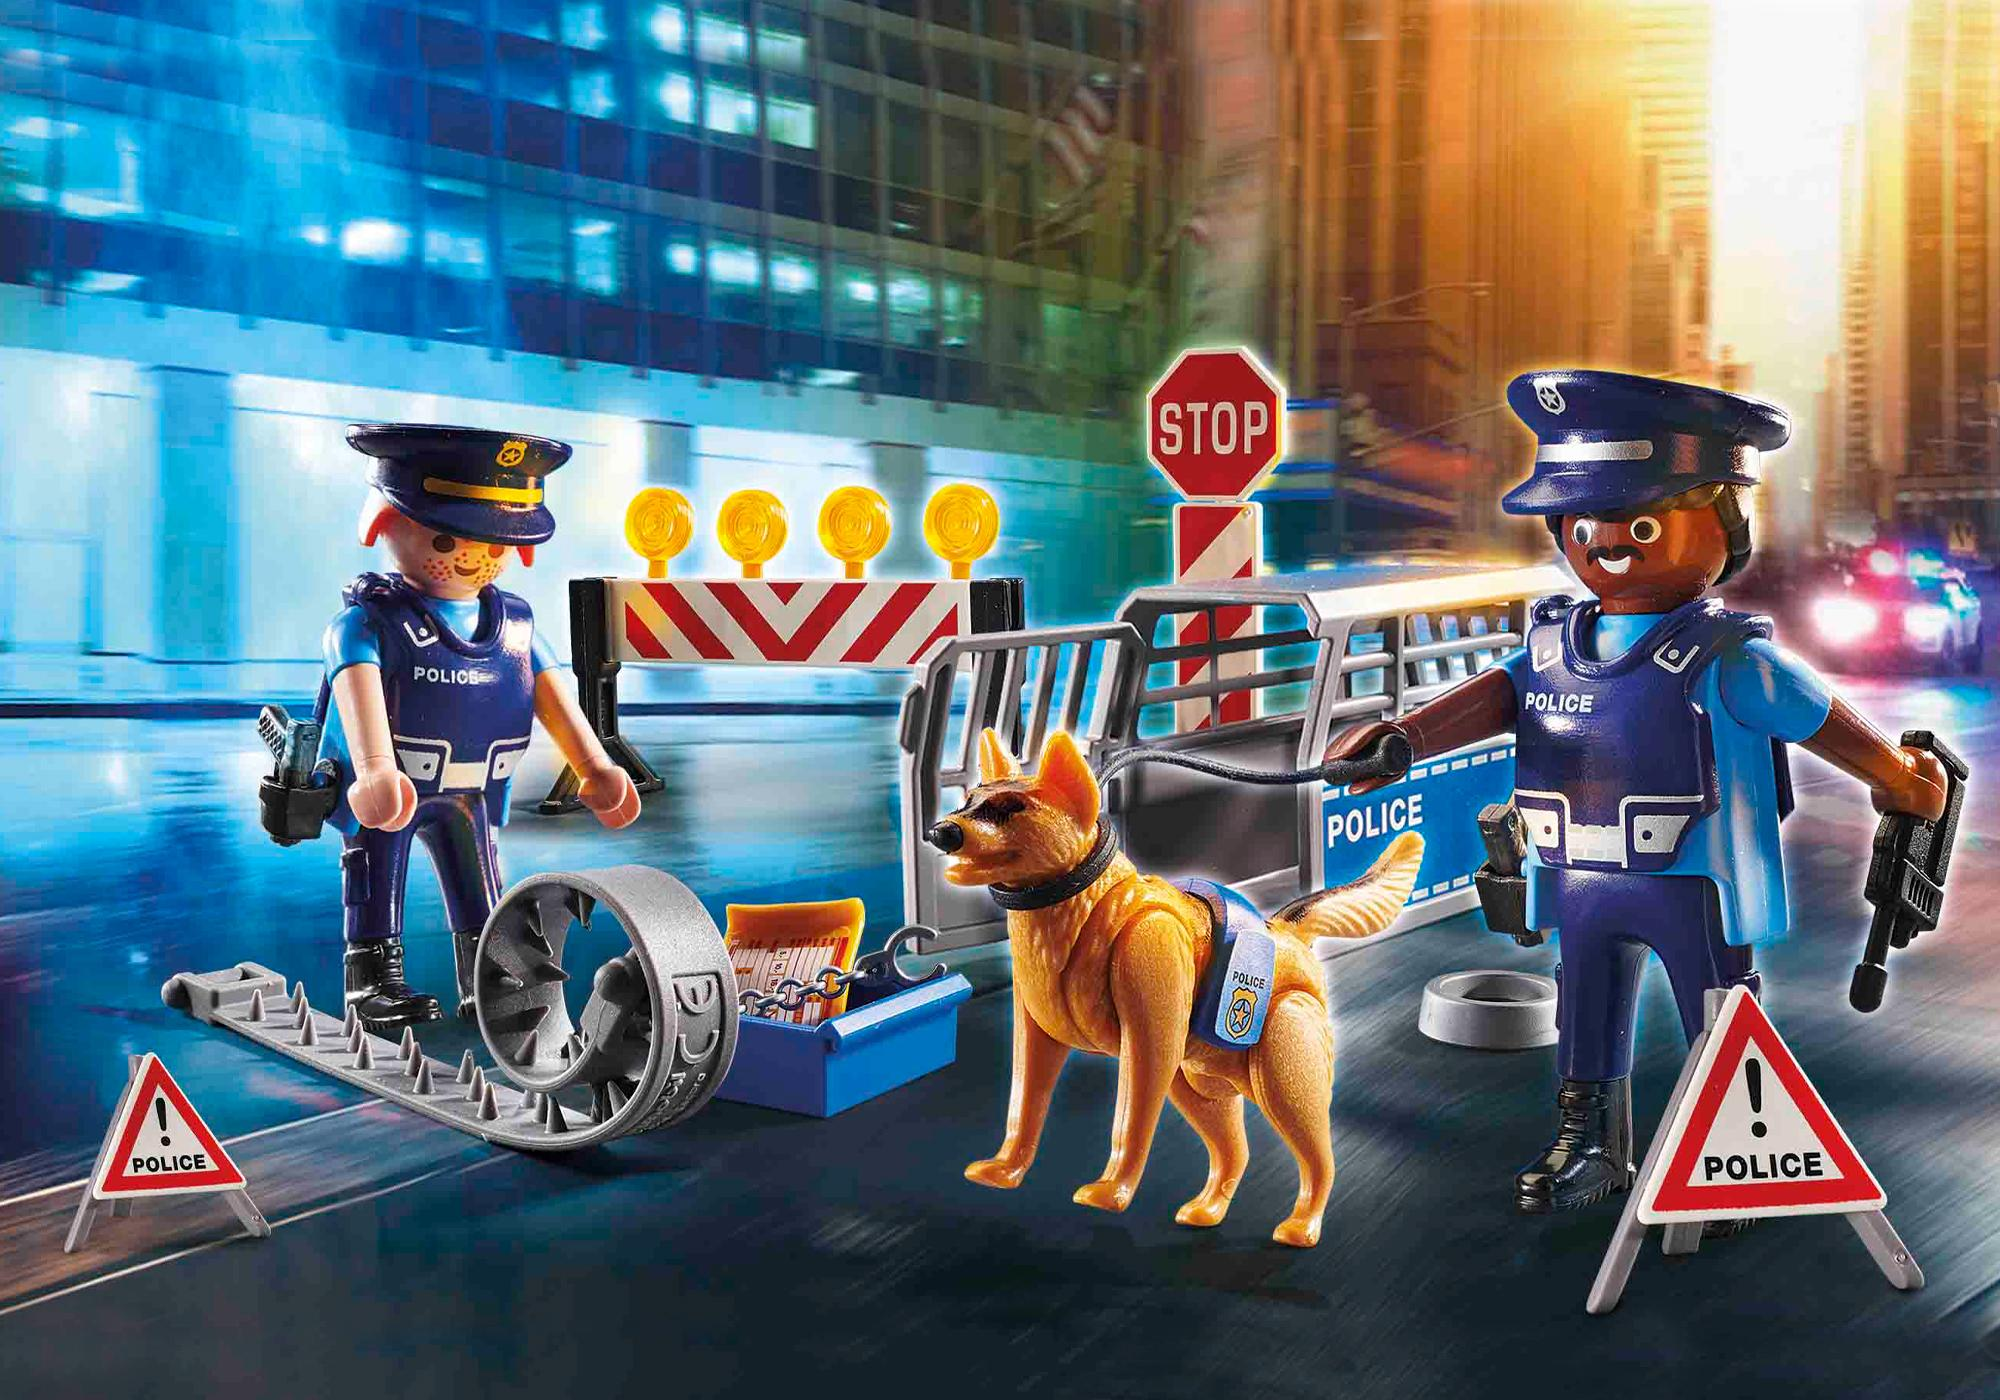 http://media.playmobil.com/i/playmobil/6878_product_detail